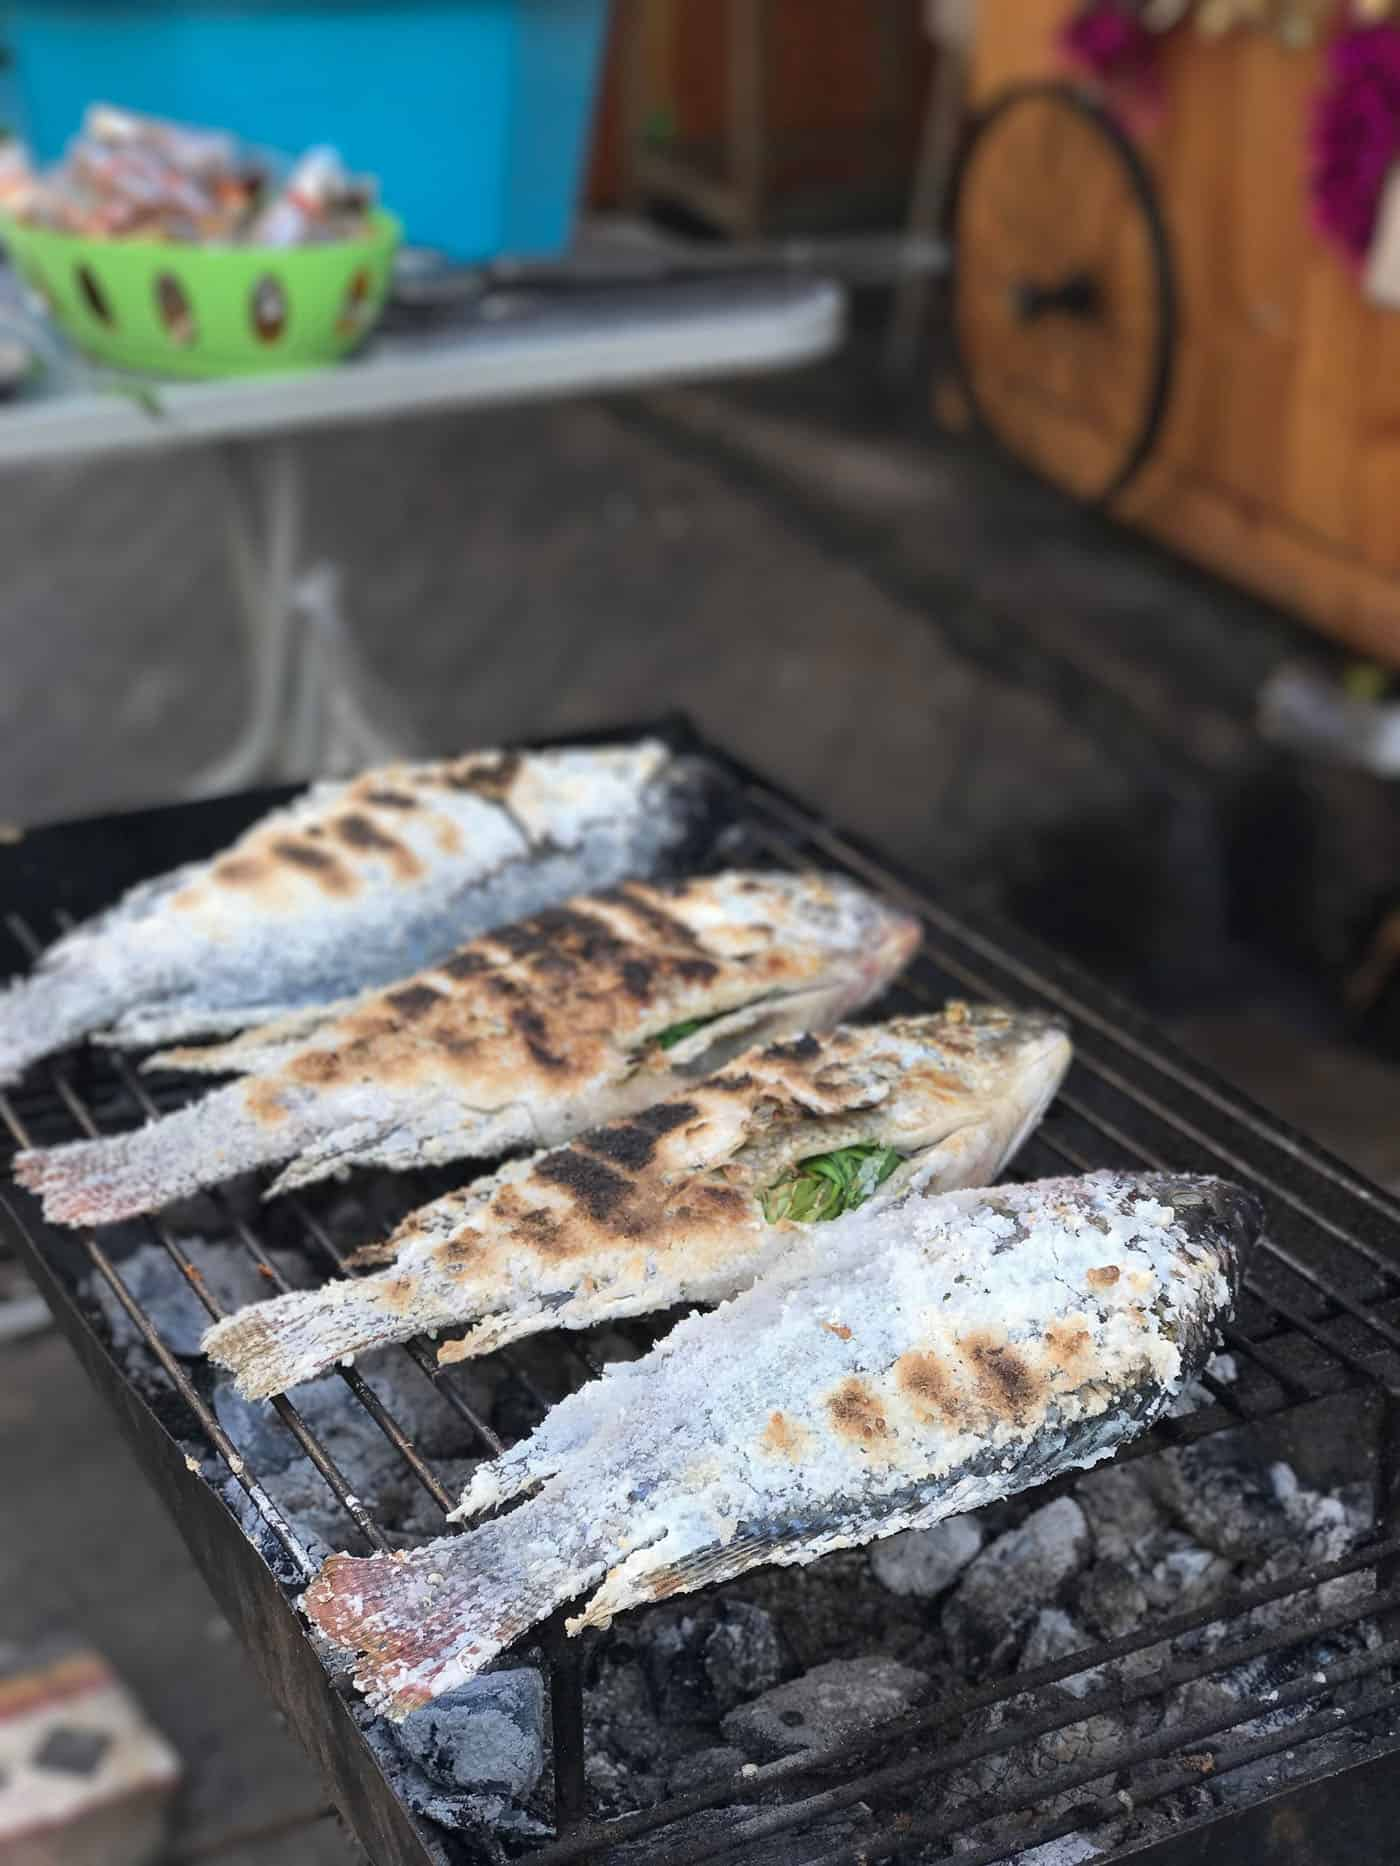 grilling fish in thailand